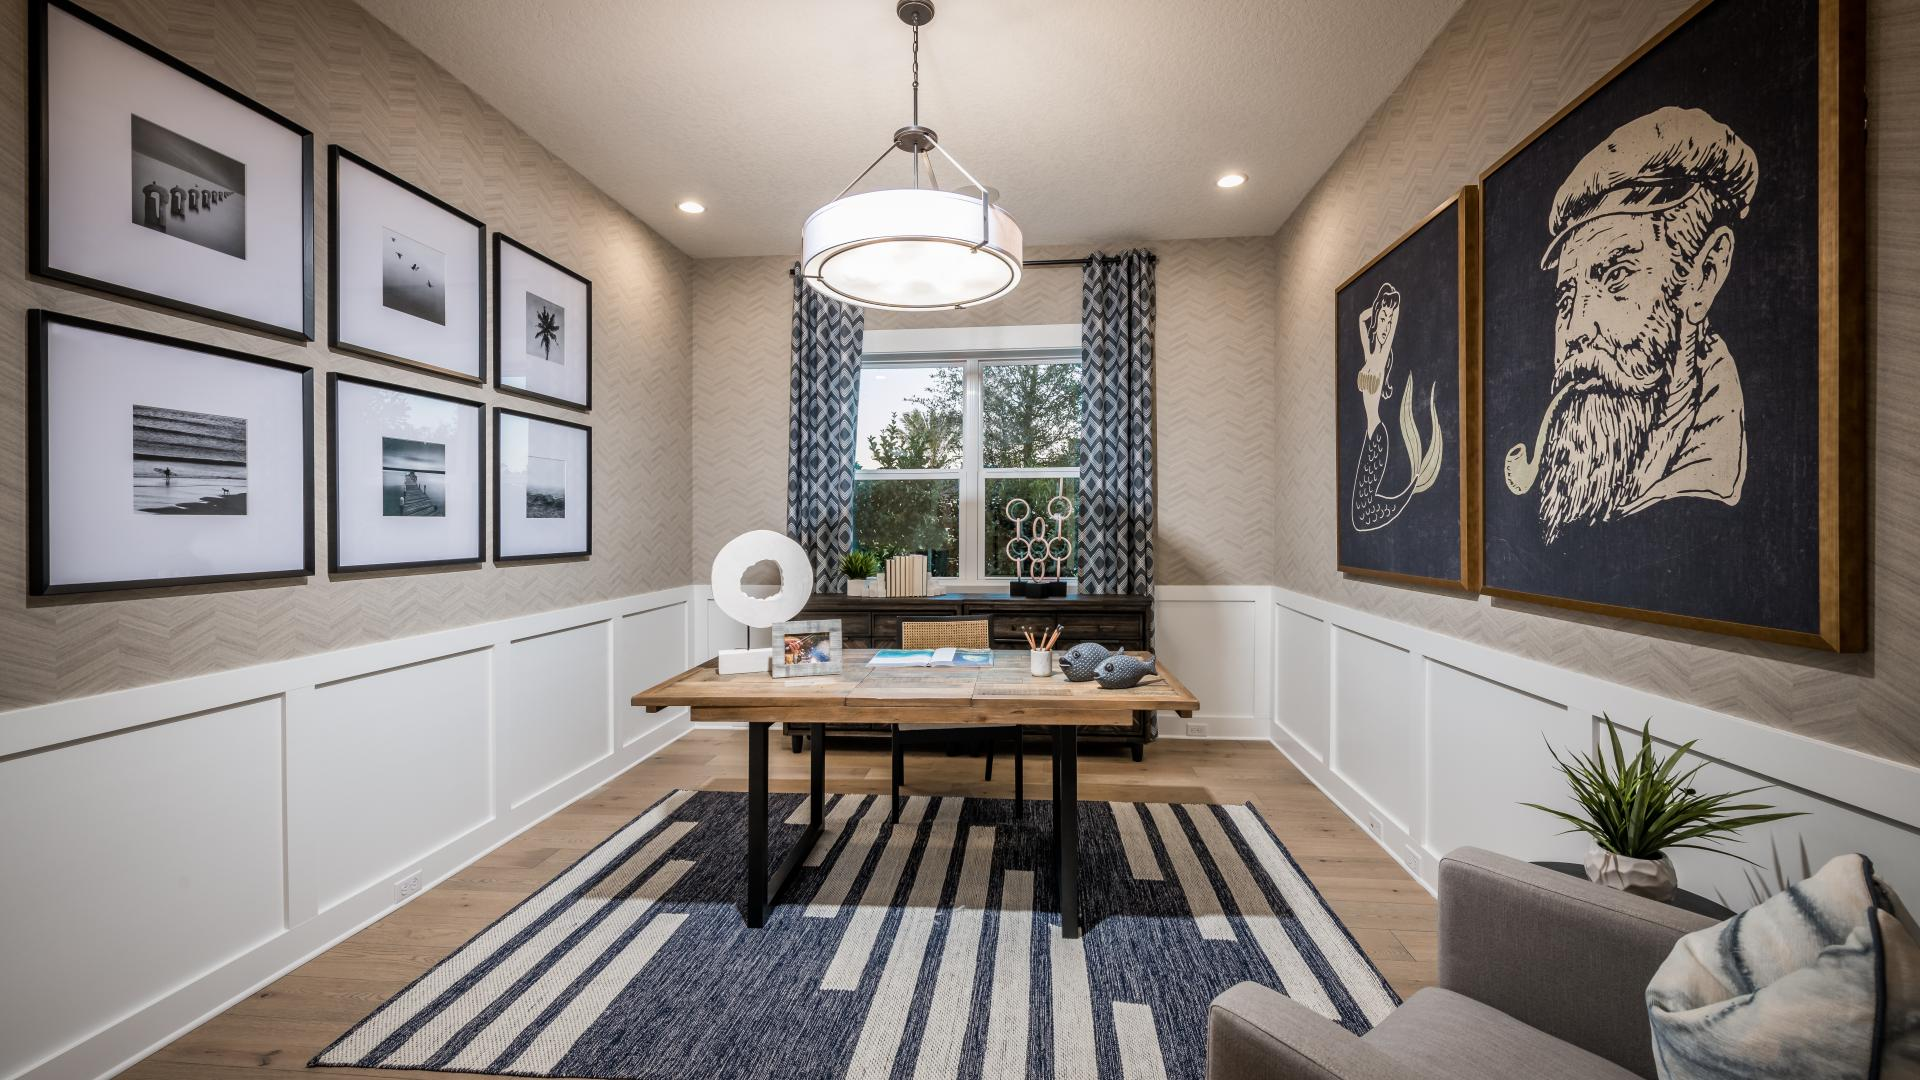 Private flex space for home offices